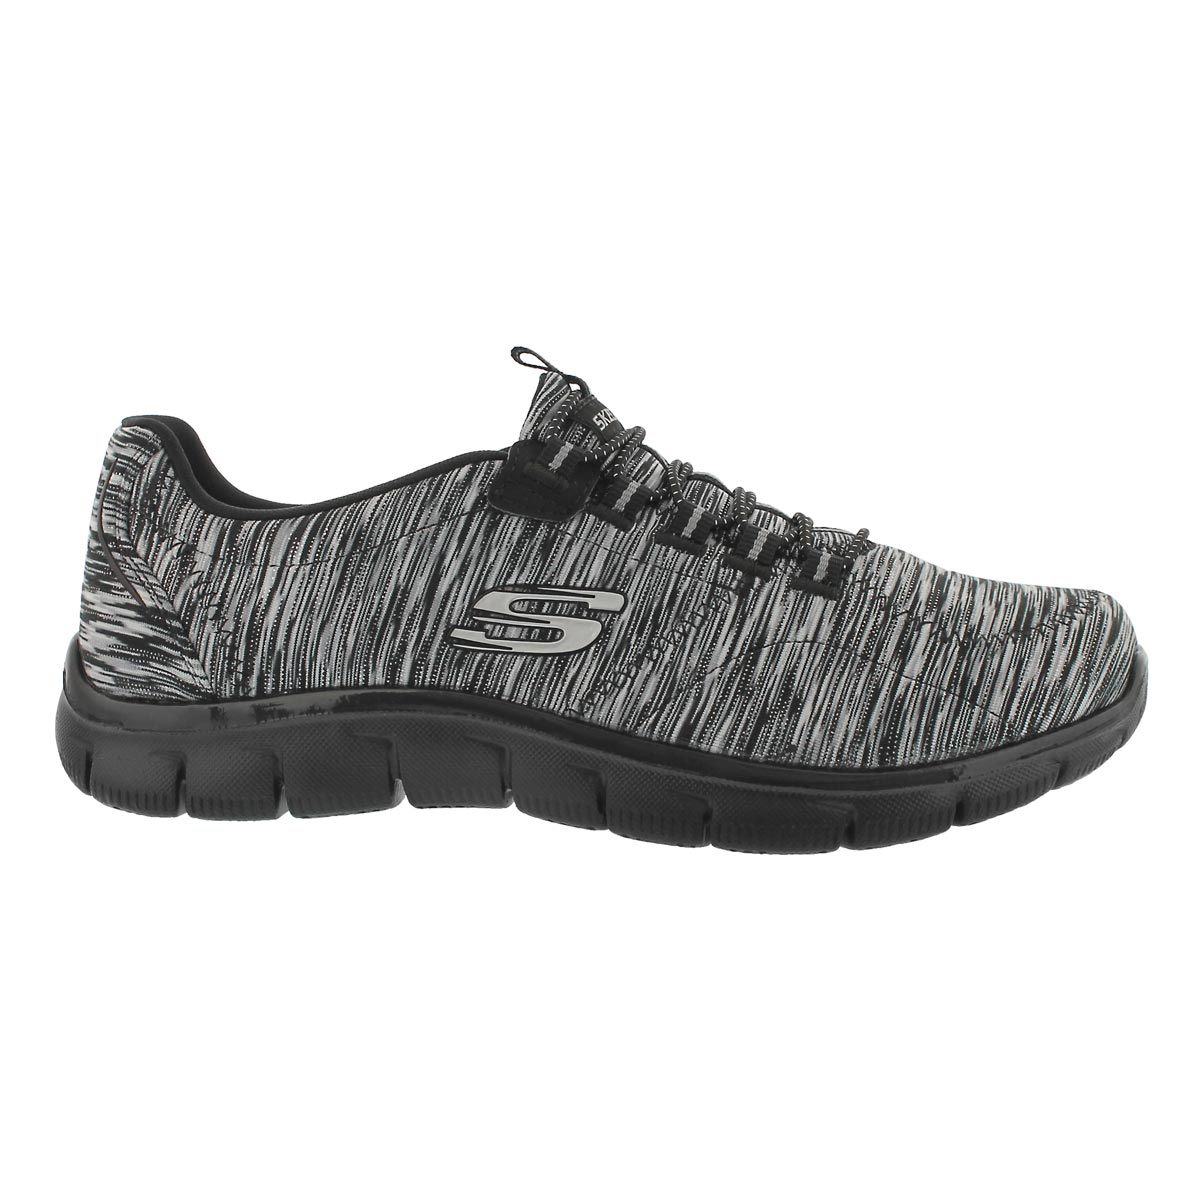 Lds Game On black/white bungee sneaker